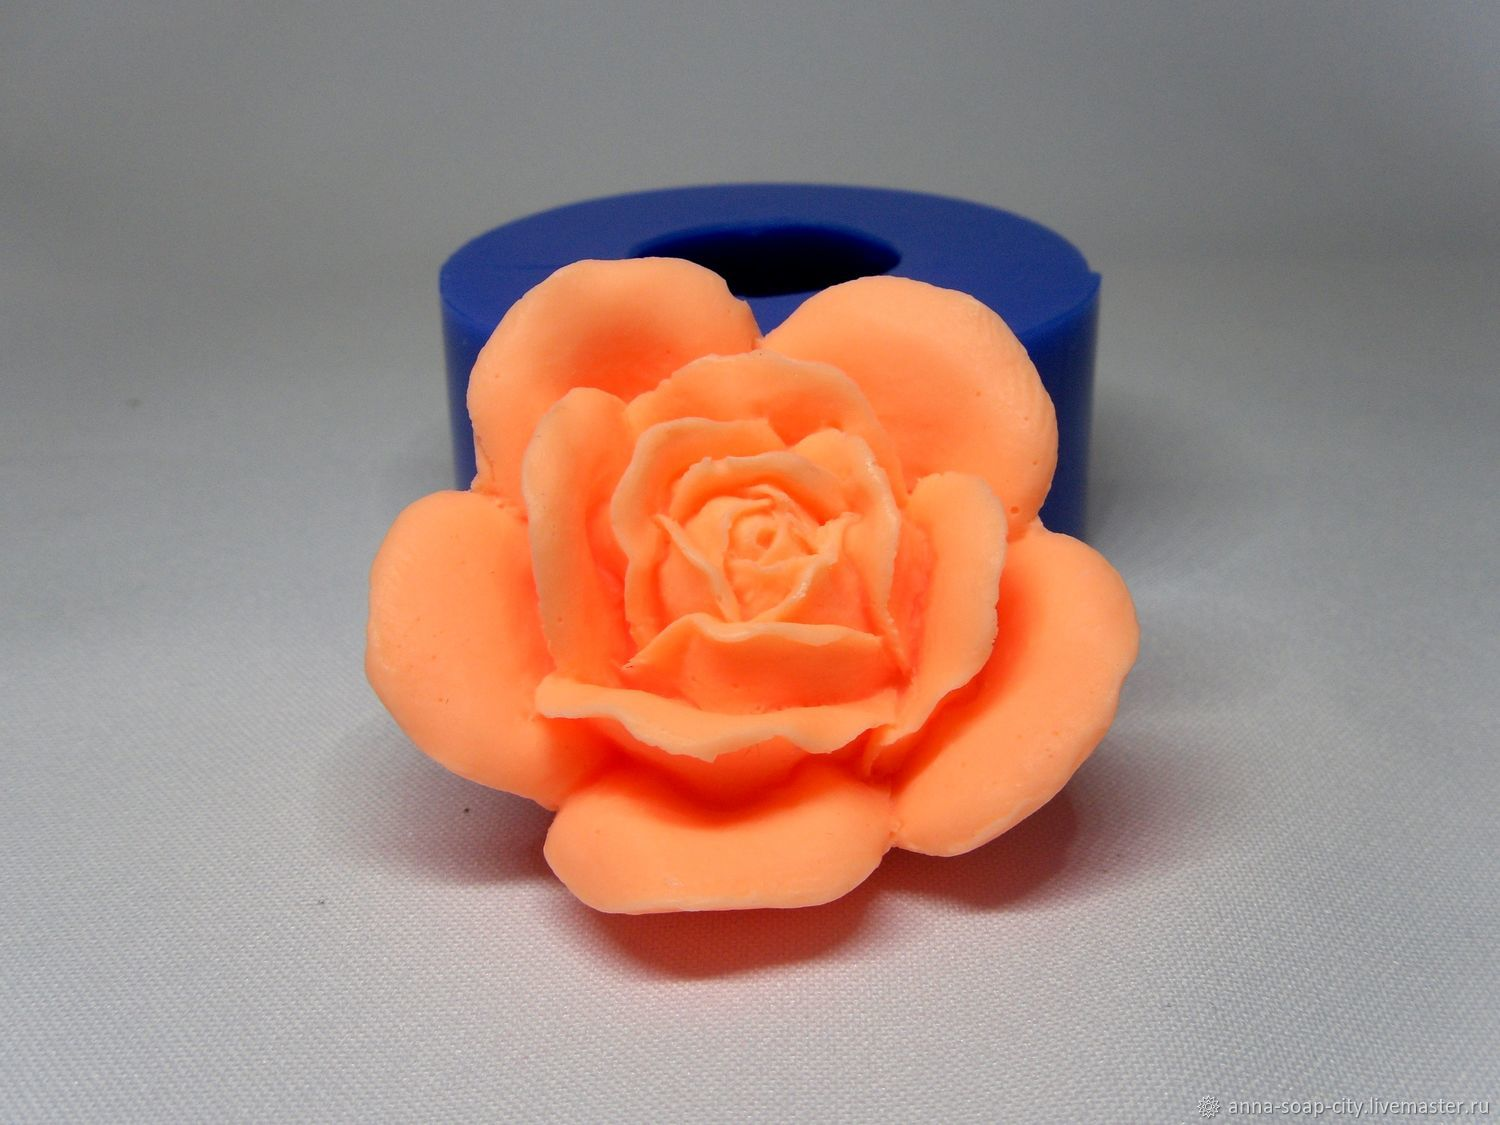 Silicone mold for soap and candles ' rose №3', Form, Arkhangelsk,  Фото №1